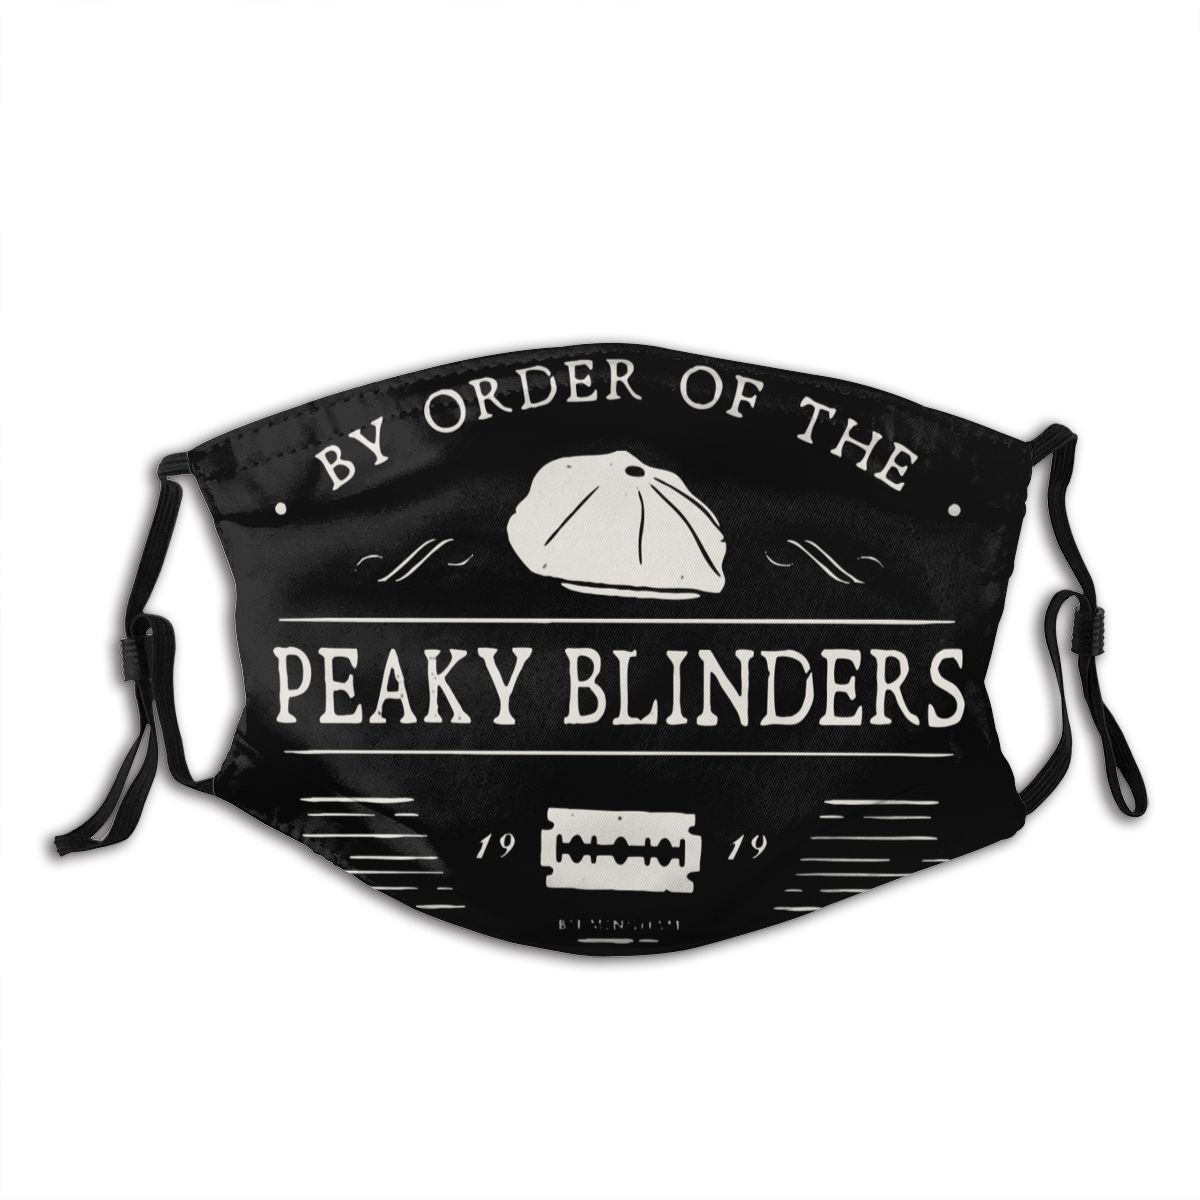 By Order Of The Peaky Blinders Unisex Non-Disposable Face Mask Anti Haze Dust Cover Respirator Muffle Mask With Filters